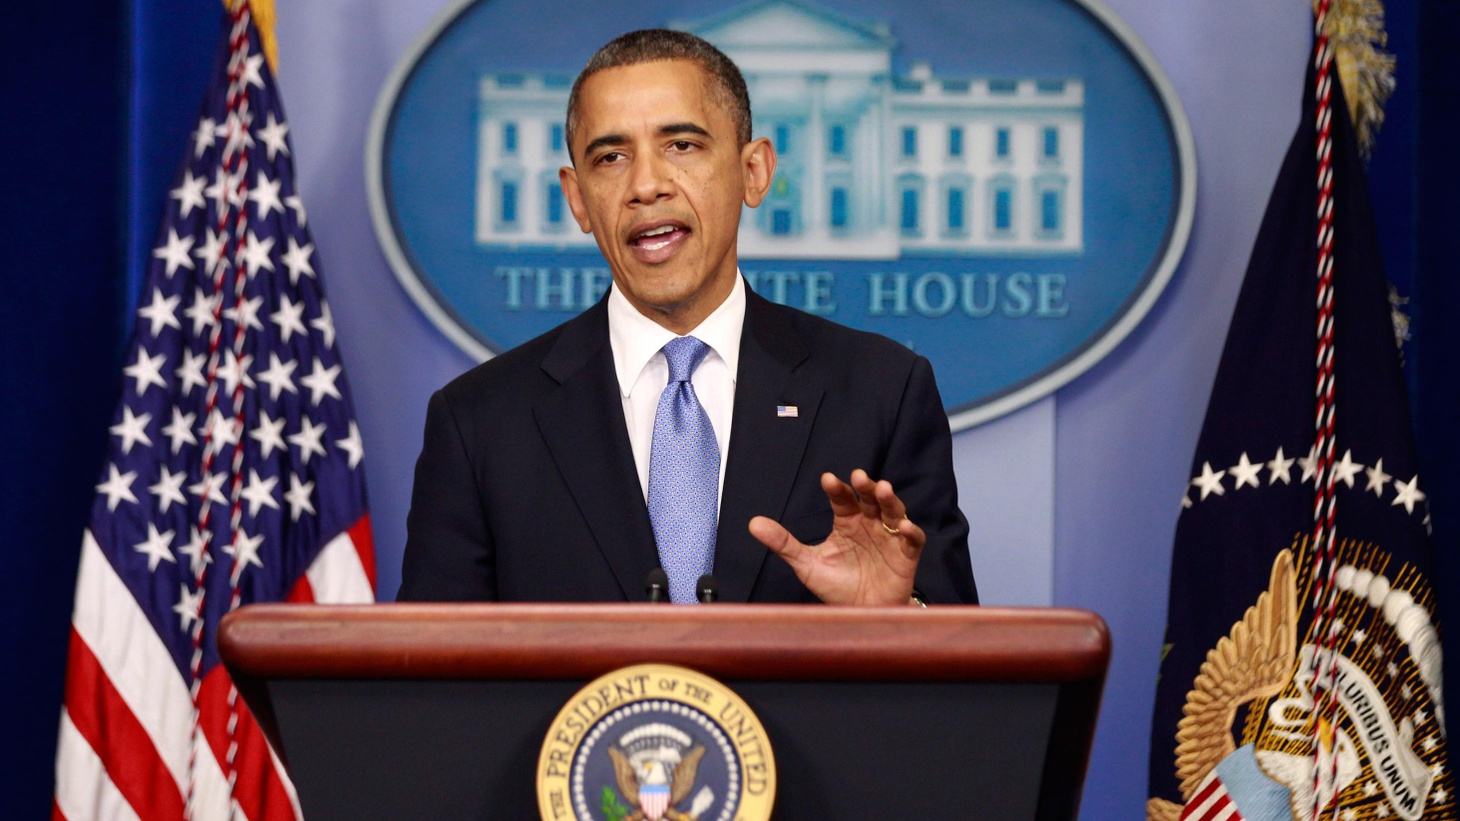 Live coverage of President Obama's first press conference in eight months. (Wednesday, November 14 at 10:20 PST)